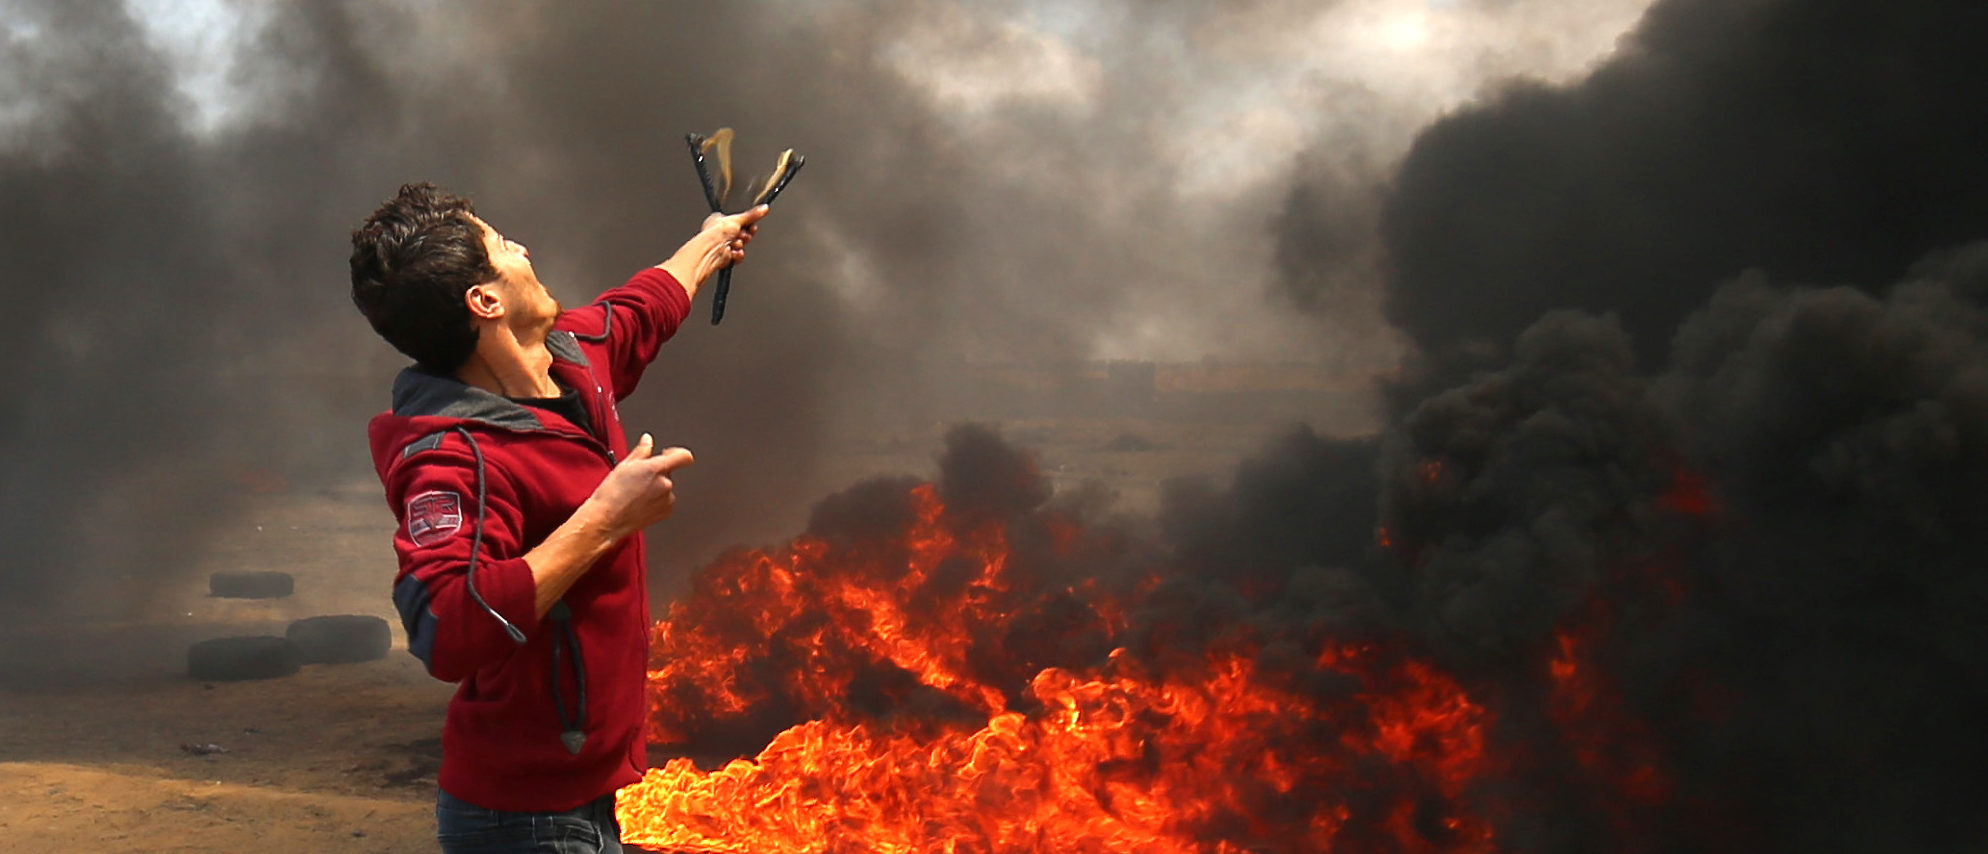 A Palestinian man uses a slingshot during clashes with Israeli forces along the border with the Gaza strip east of Khan Yunis on May 14, 2018, as Palestinians protest over the inauguration of the US embassy following its controversial move to Jerusalem. (Photo by SAID KHATIB / AFP) (Photo credit should read SAID KHATIB/AFP/Getty Images